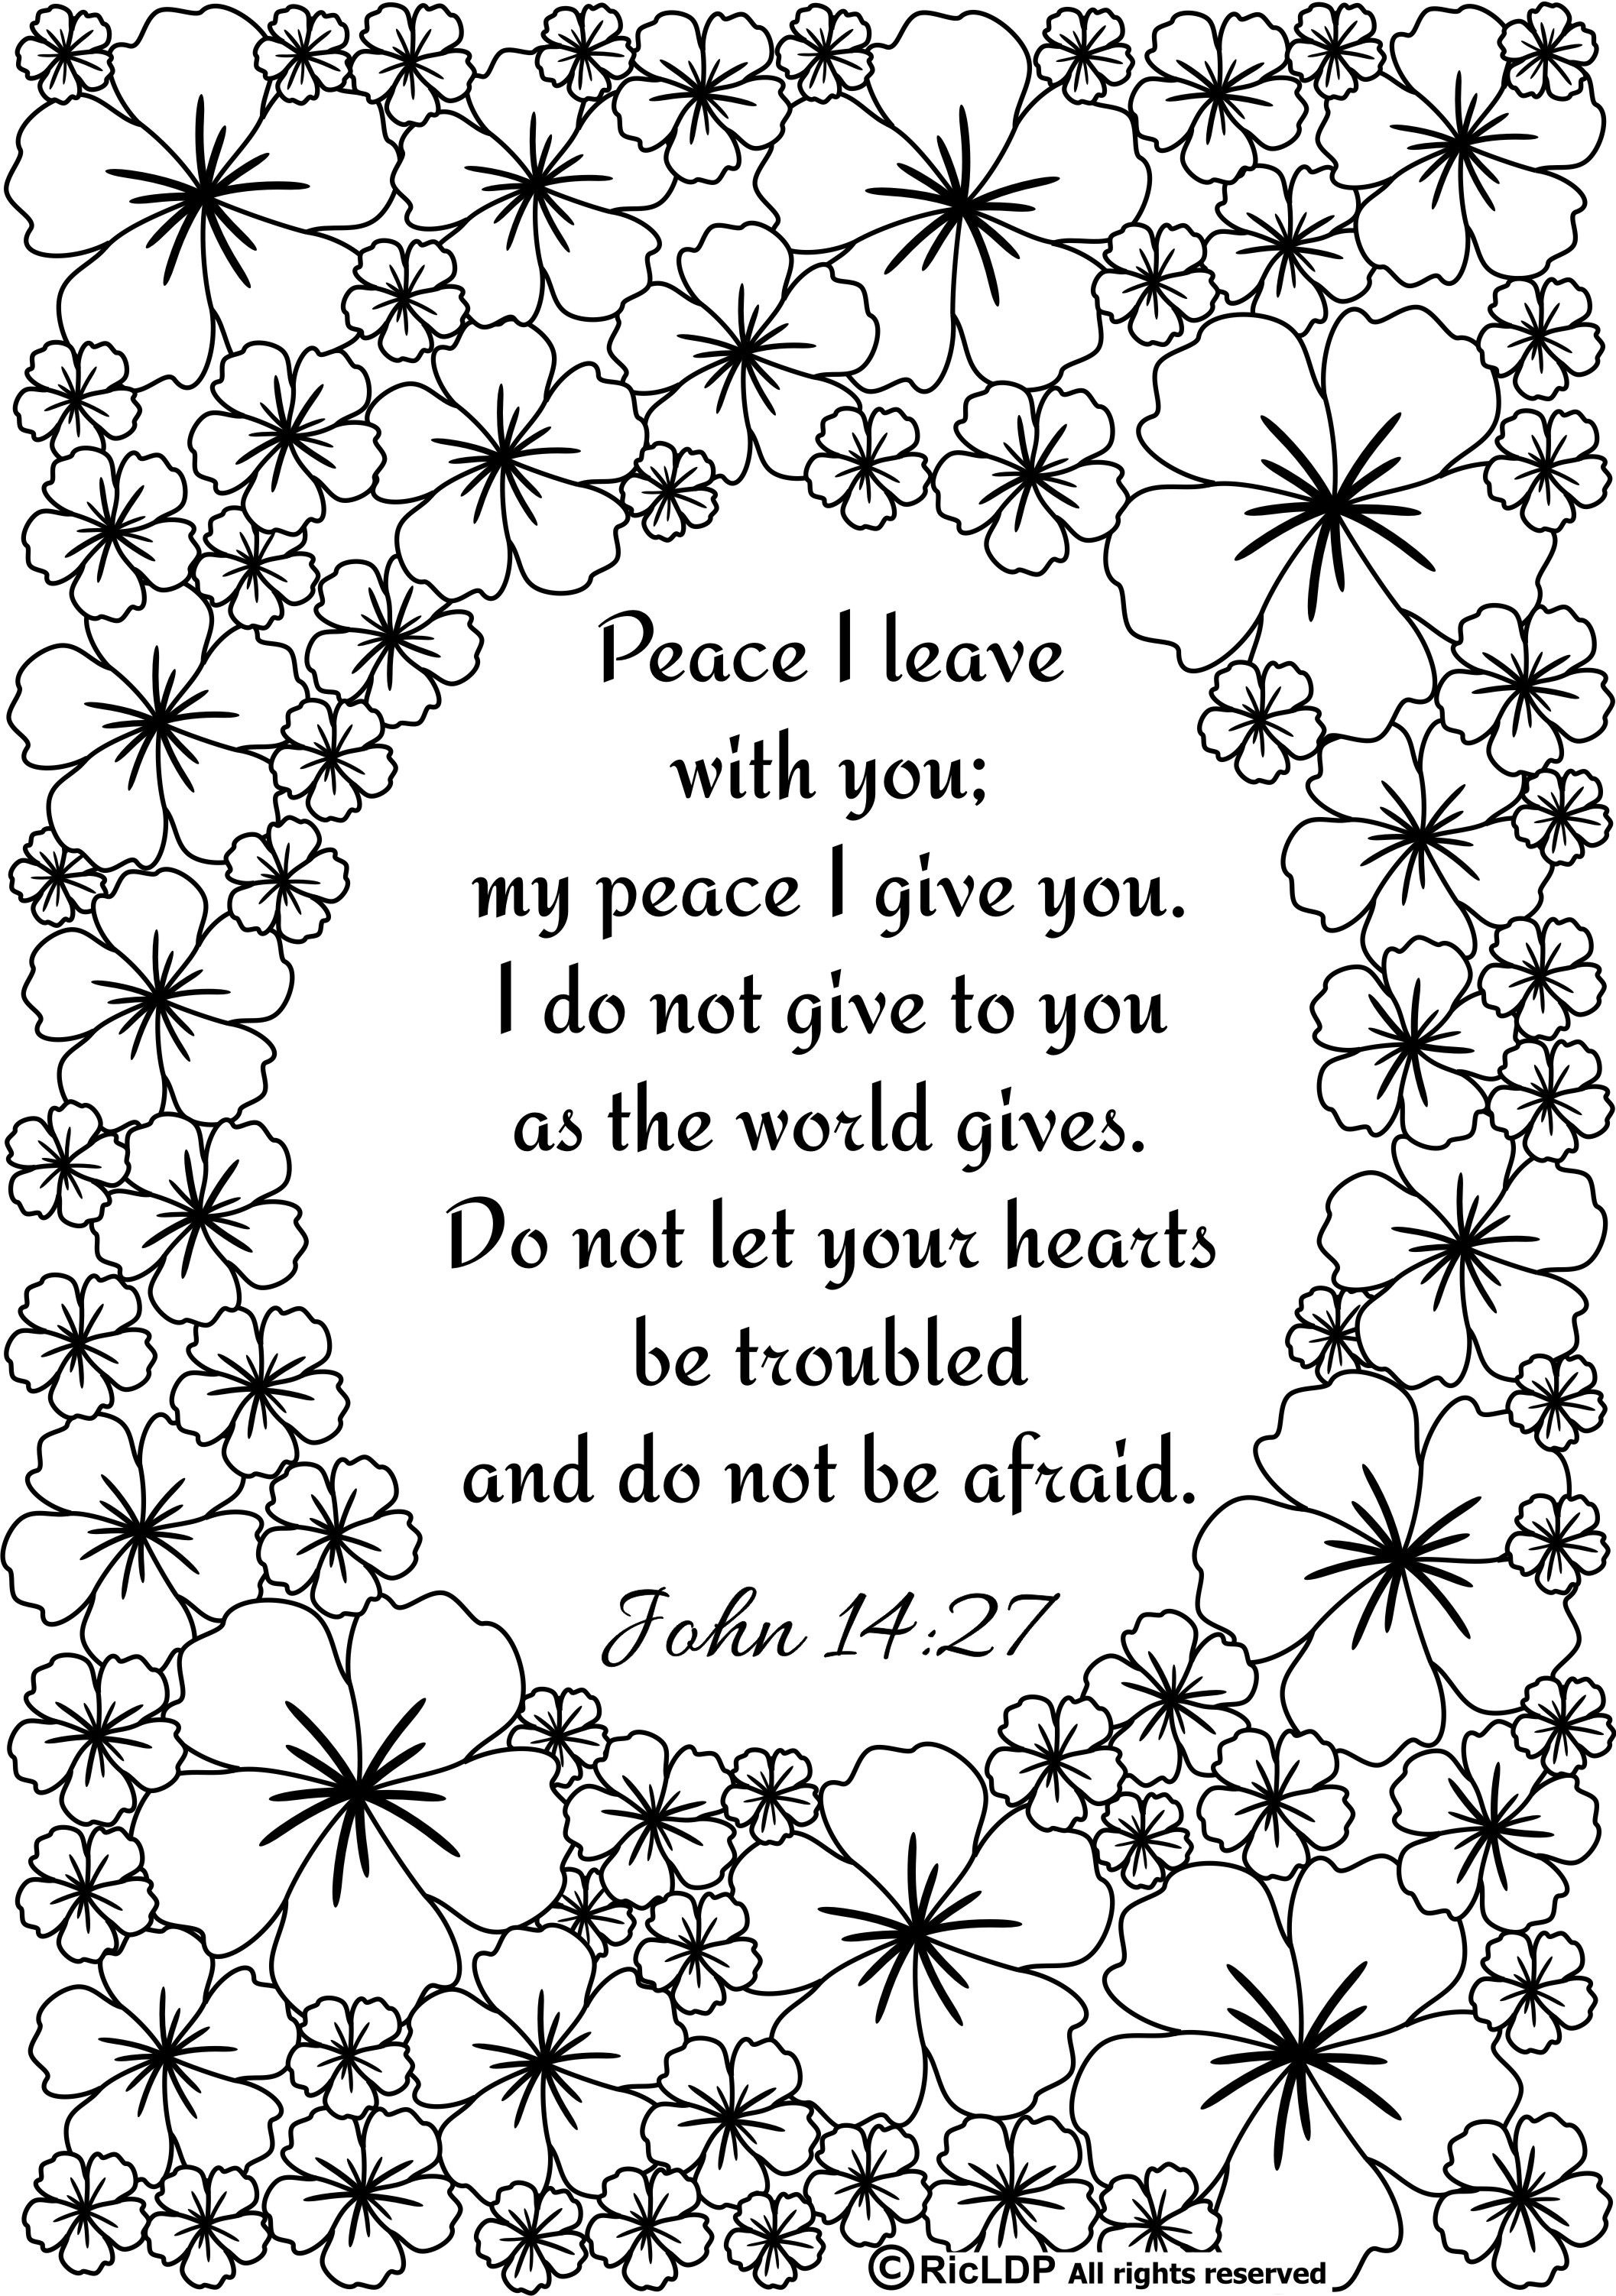 Ricldp Artworks (Ricldp) | Coloring Pages!!! | Bible Verse Coloring - Free Printable Bible Coloring Pages With Verses